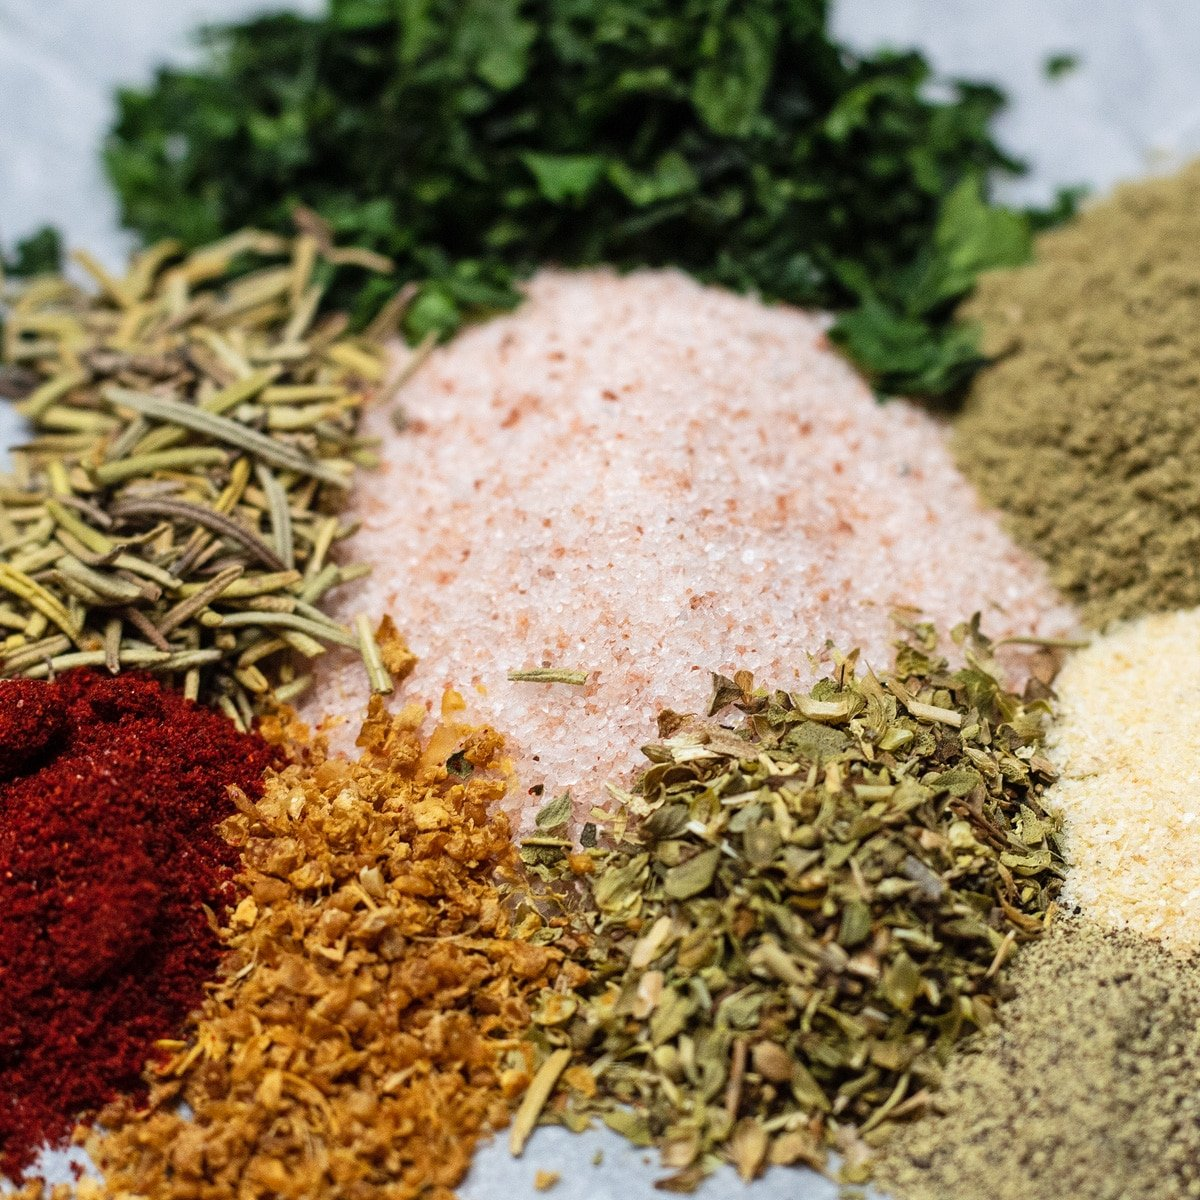 Lamb rub spices in small piles on a white background.